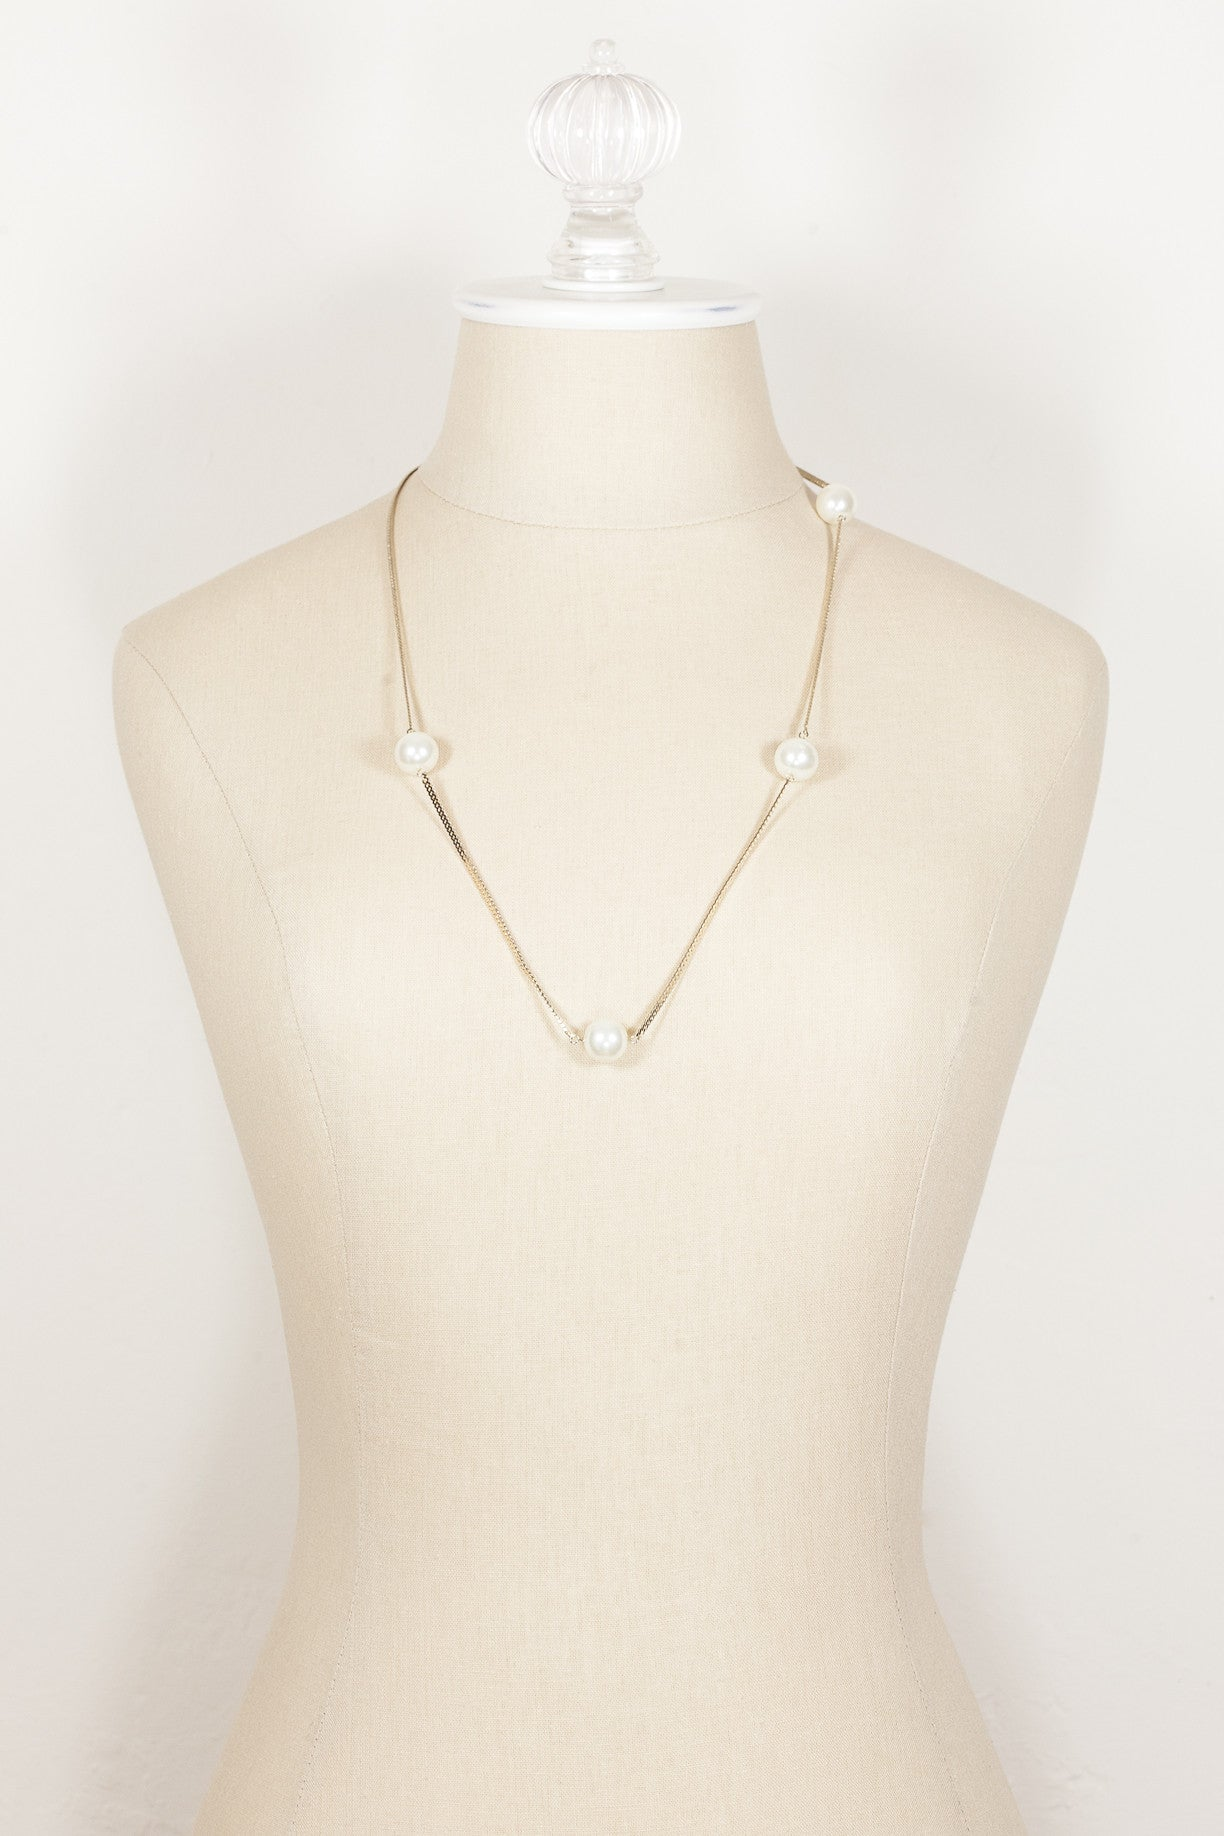 70's__Vintage__Flat Chain and Pearl Necklace